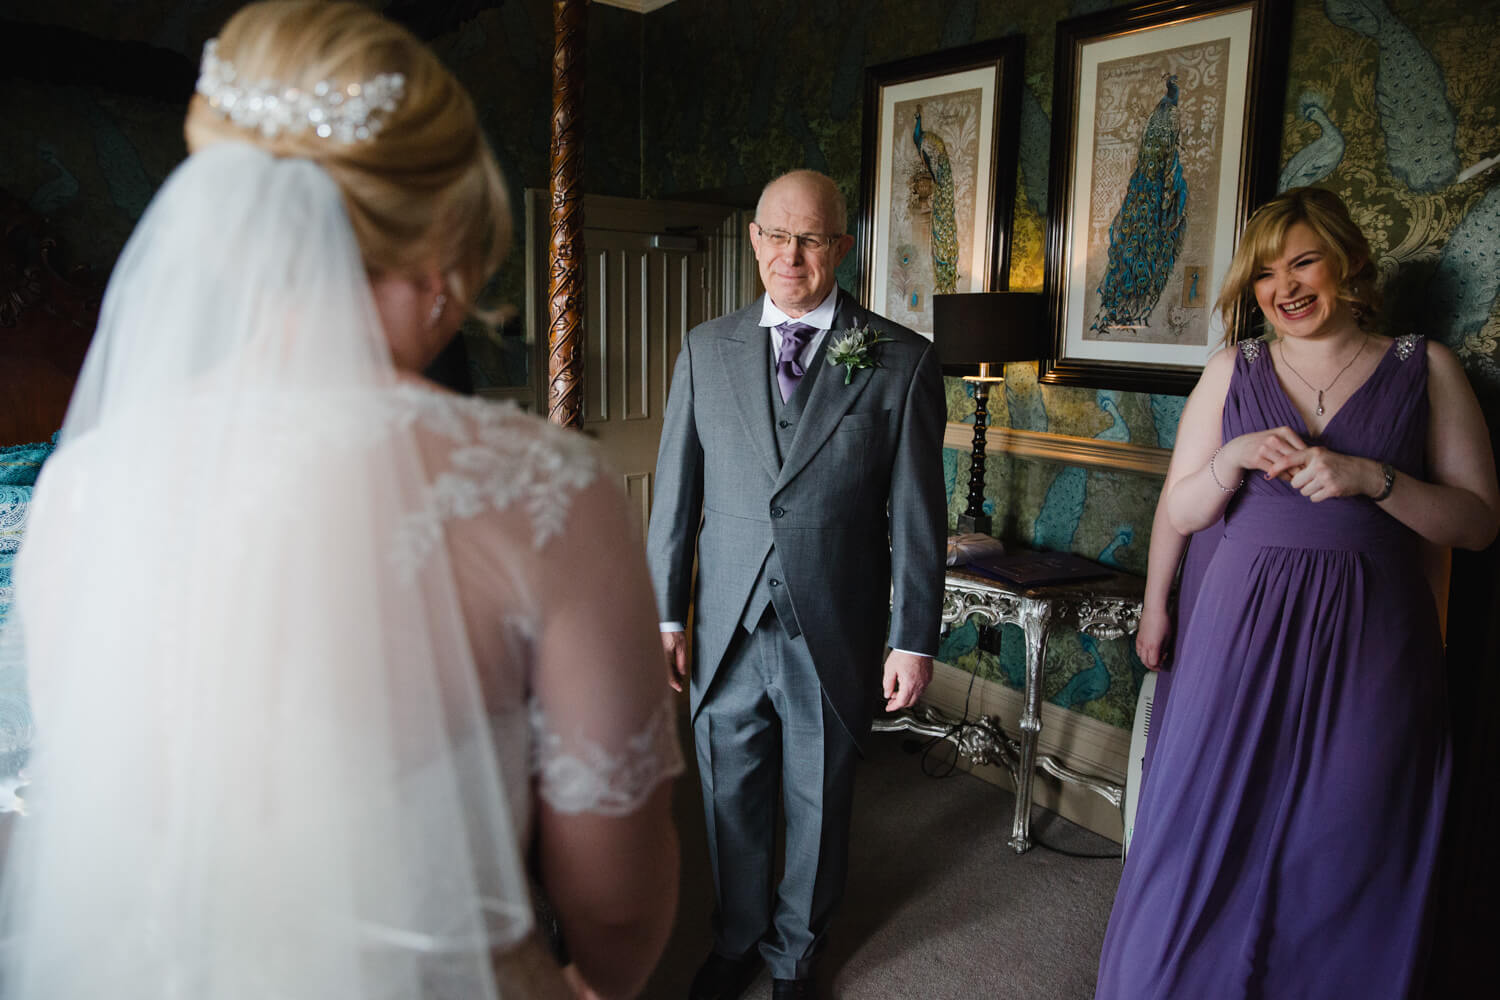 father of bride greets daughter in bridal suite for intimate moment before wedding nuptials